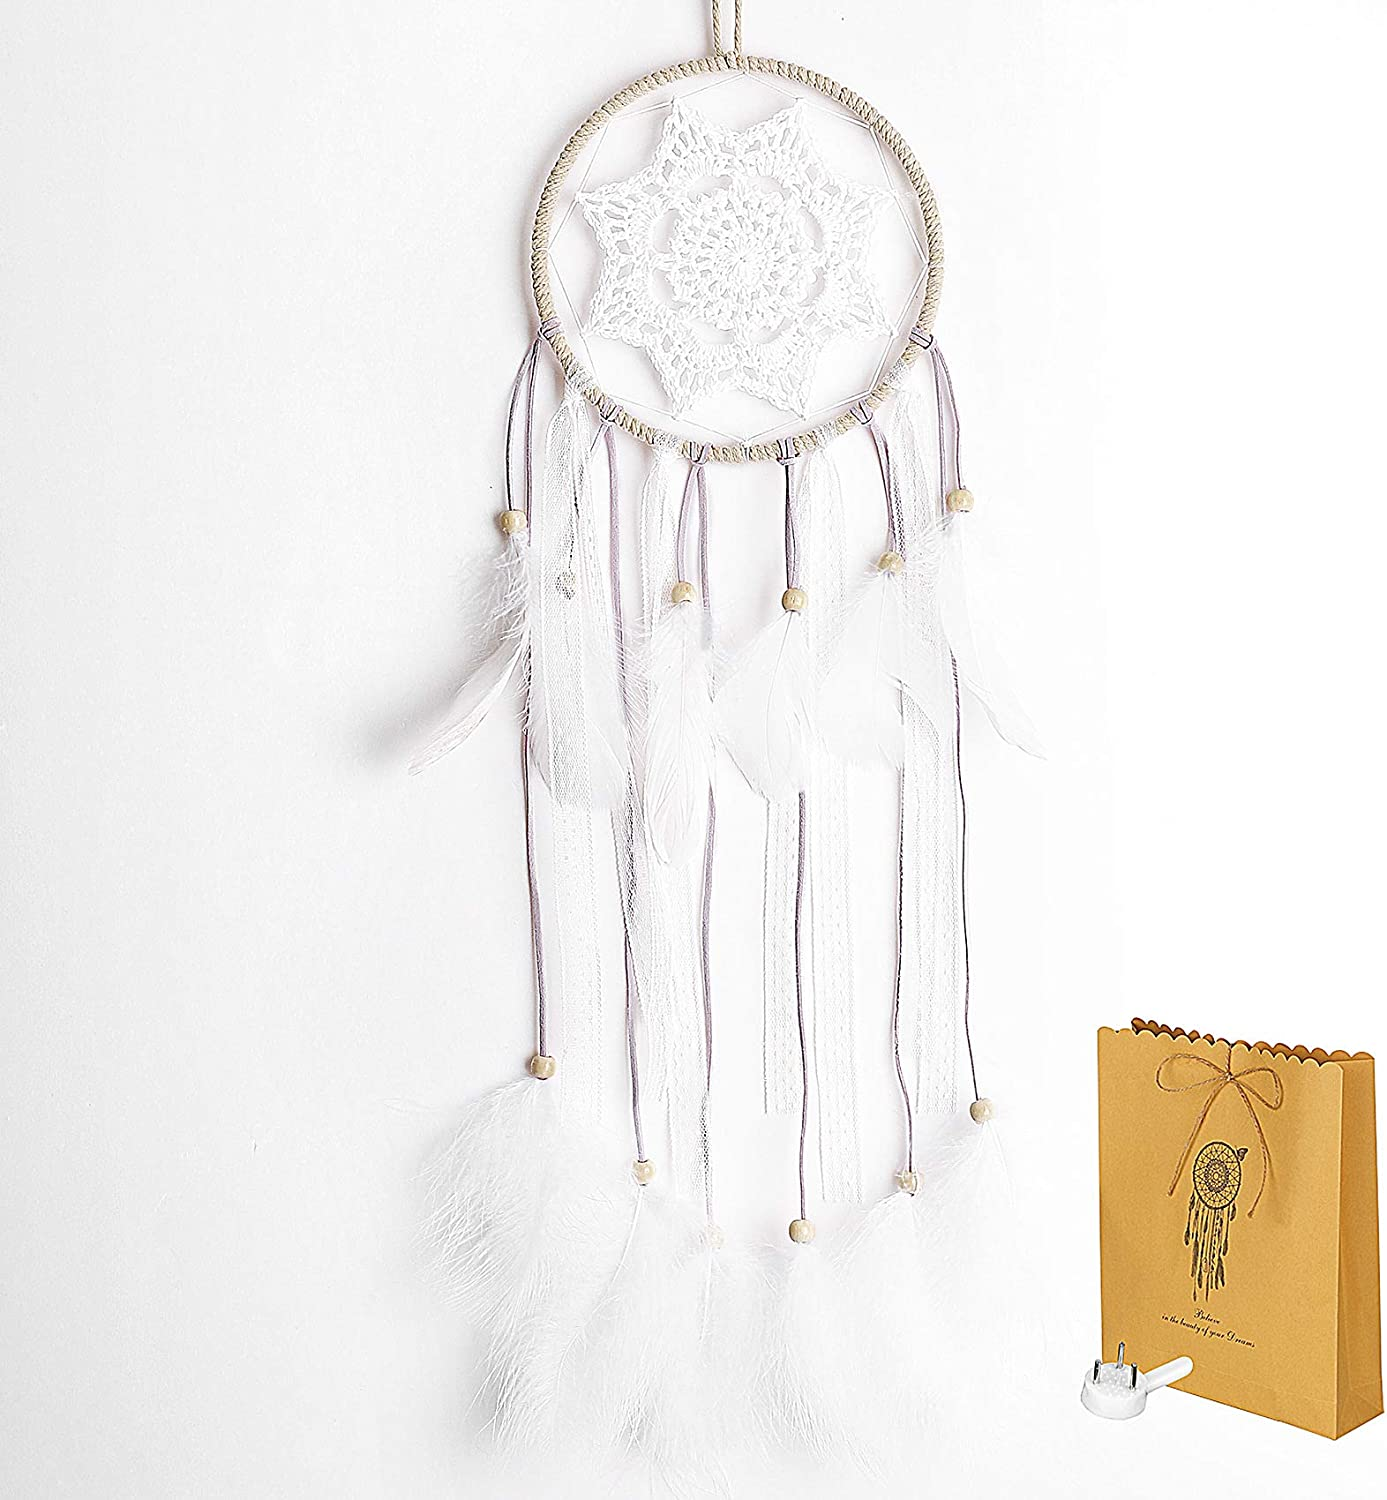 ChasBete Dream Catcher Wall Decor, Boho Dream Catcher Small for Bedroom, Handmade Feathers Dream Catcher Gift for Girls Birthday, Length 25""